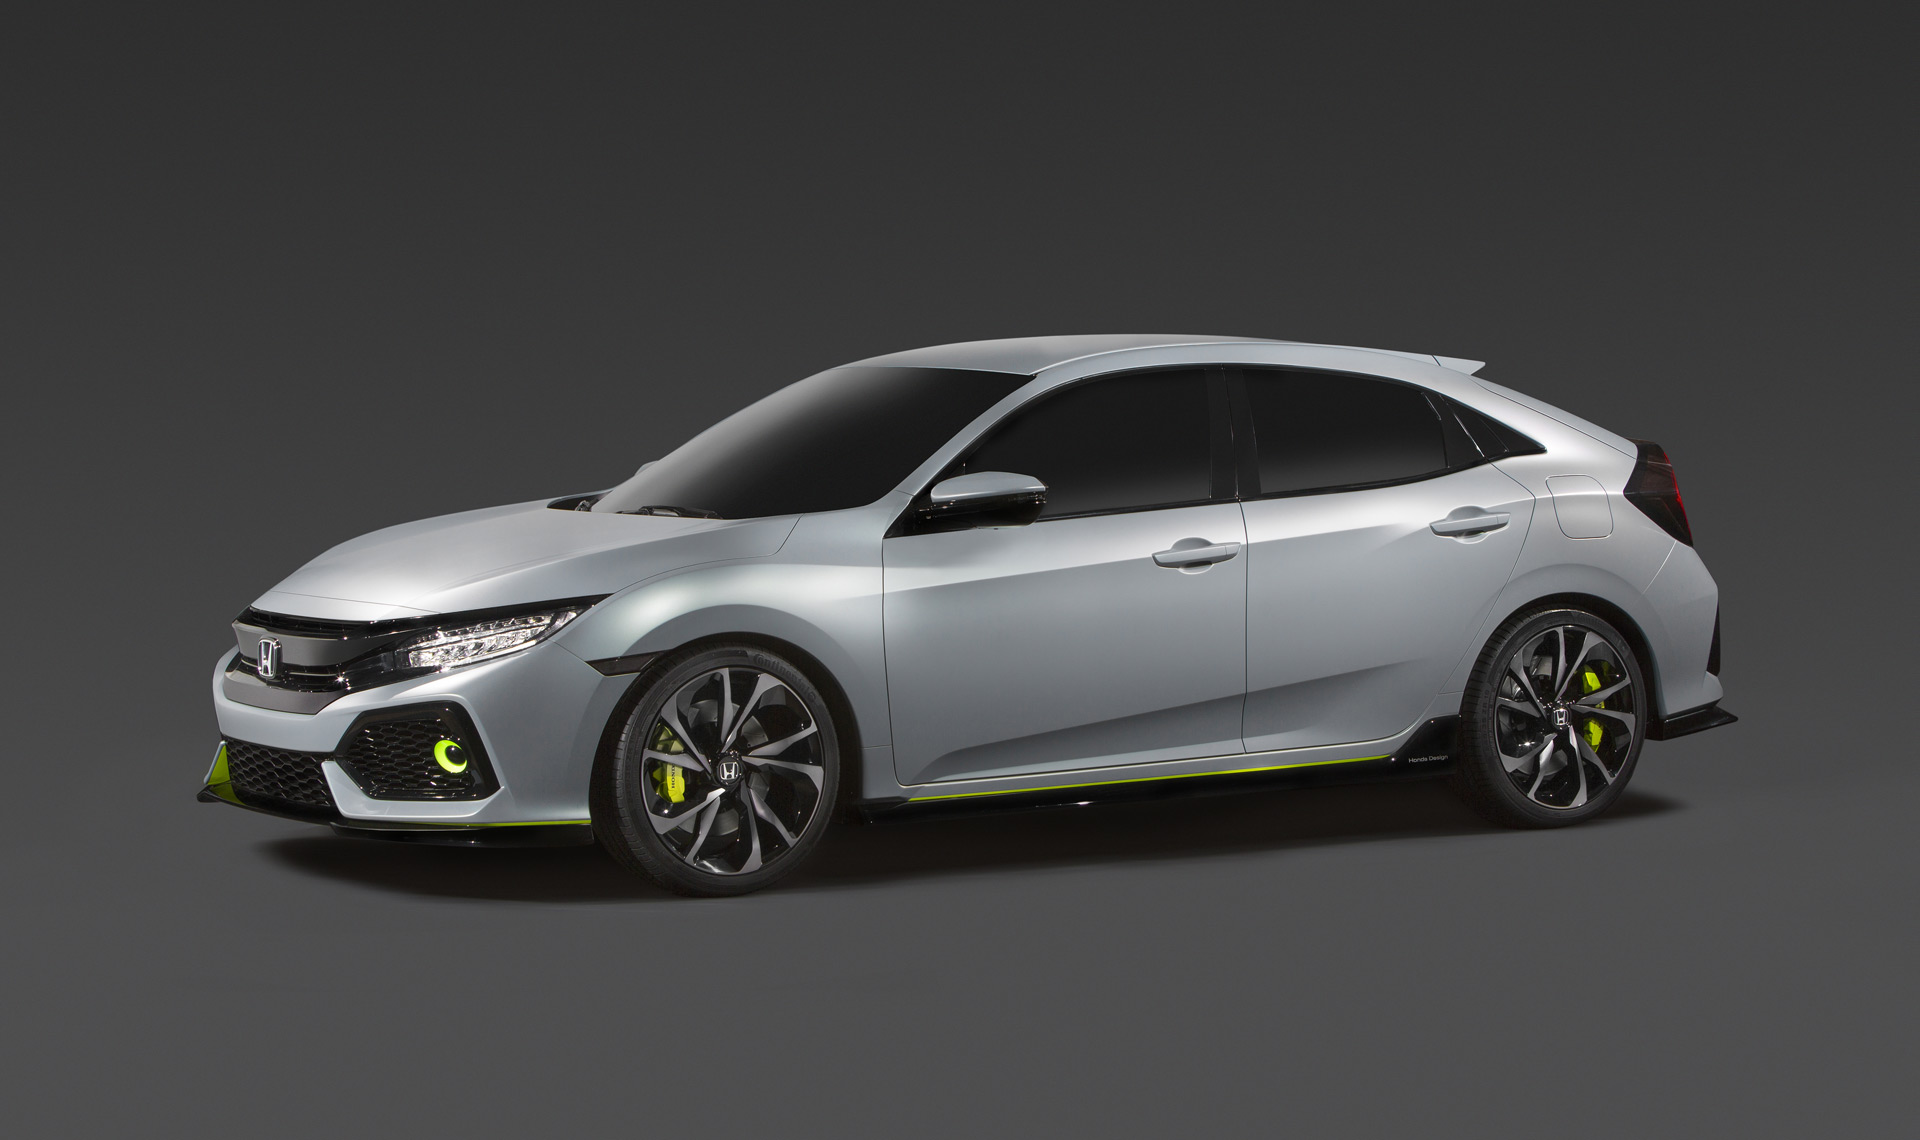 2017 honda civic lineup embraces the manual transmission for Honda civic wagon 2017